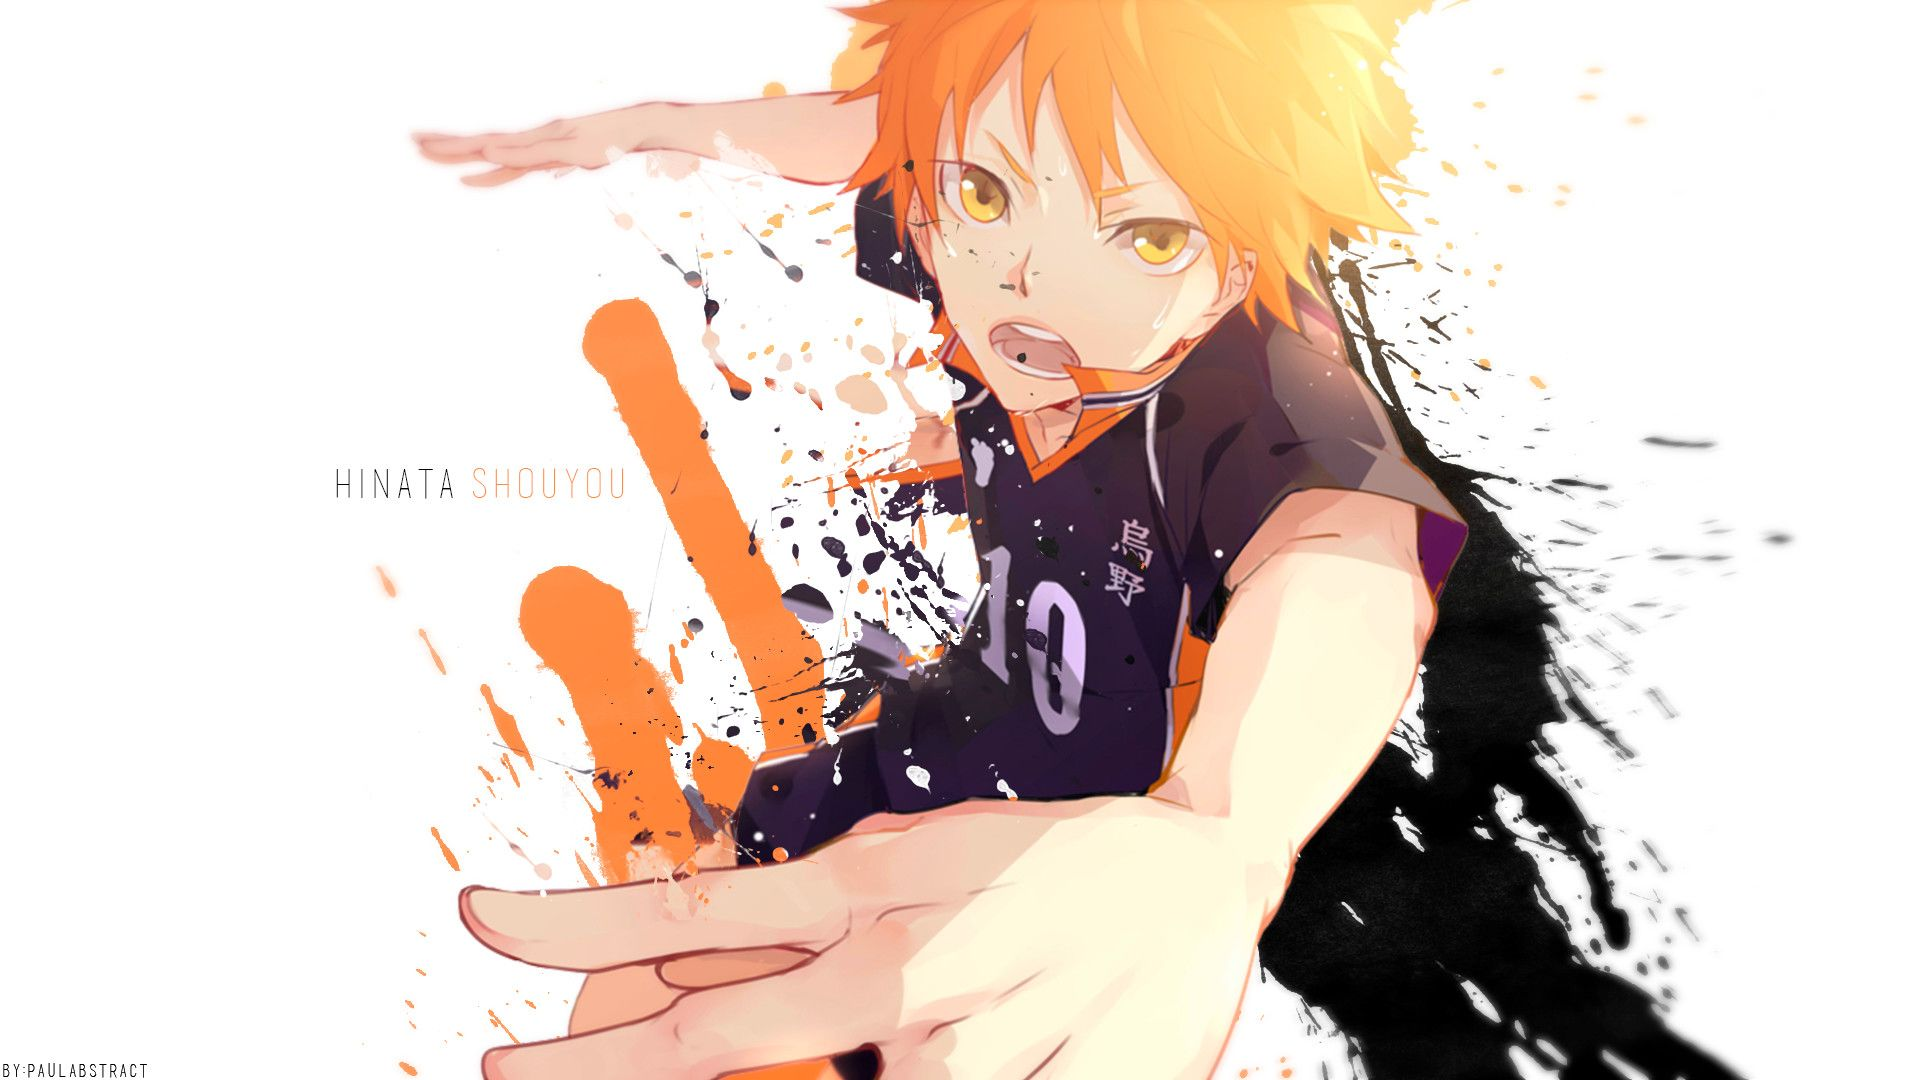 1920x1080 Hd Wallpaper Background Id 863737 Haikyuu Anime Haikyuu Haikyu